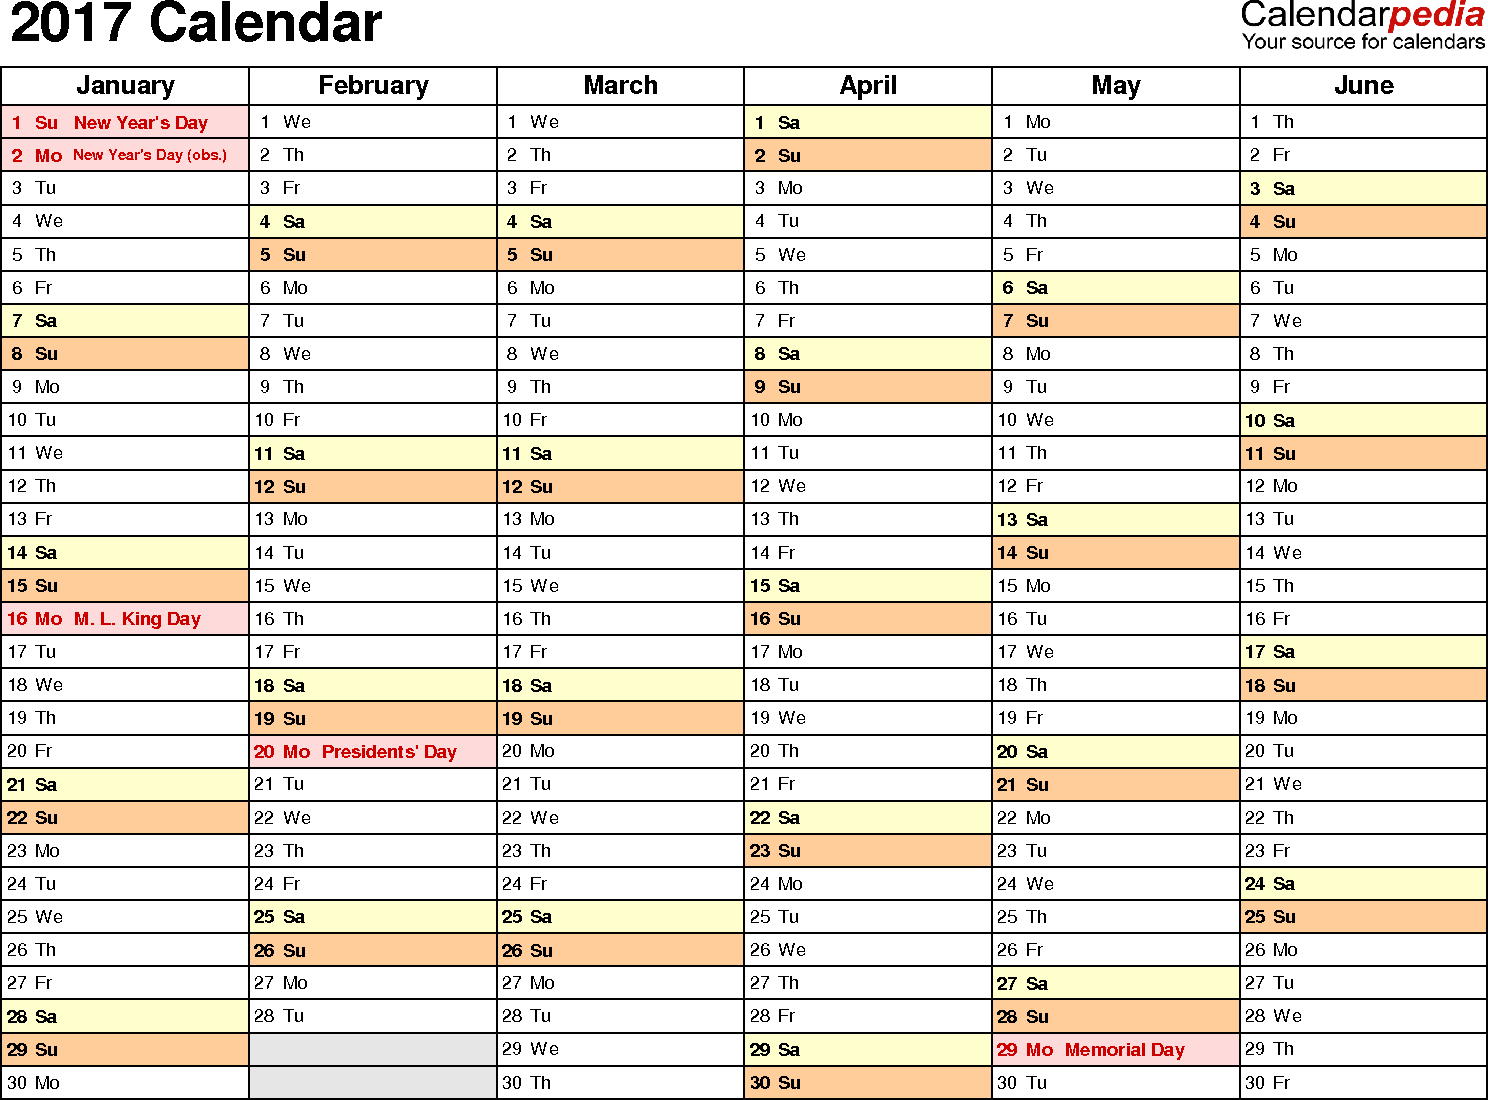 Ediblewildsus  Scenic  Calendar  Download  Free Printable Excel Templates Xls With Lovable Template   Calendar For Excel Months Horizontally  Pages Landscape Orientation With Adorable Excel Not Equal To Also How To Do Standard Deviation In Excel In Addition Compare Columns In Excel And How To Run A Macro In Excel As Well As How To Create A Bar Graph In Excel Additionally Anova In Excel From Calendarpediacom With Ediblewildsus  Lovable  Calendar  Download  Free Printable Excel Templates Xls With Adorable Template   Calendar For Excel Months Horizontally  Pages Landscape Orientation And Scenic Excel Not Equal To Also How To Do Standard Deviation In Excel In Addition Compare Columns In Excel From Calendarpediacom